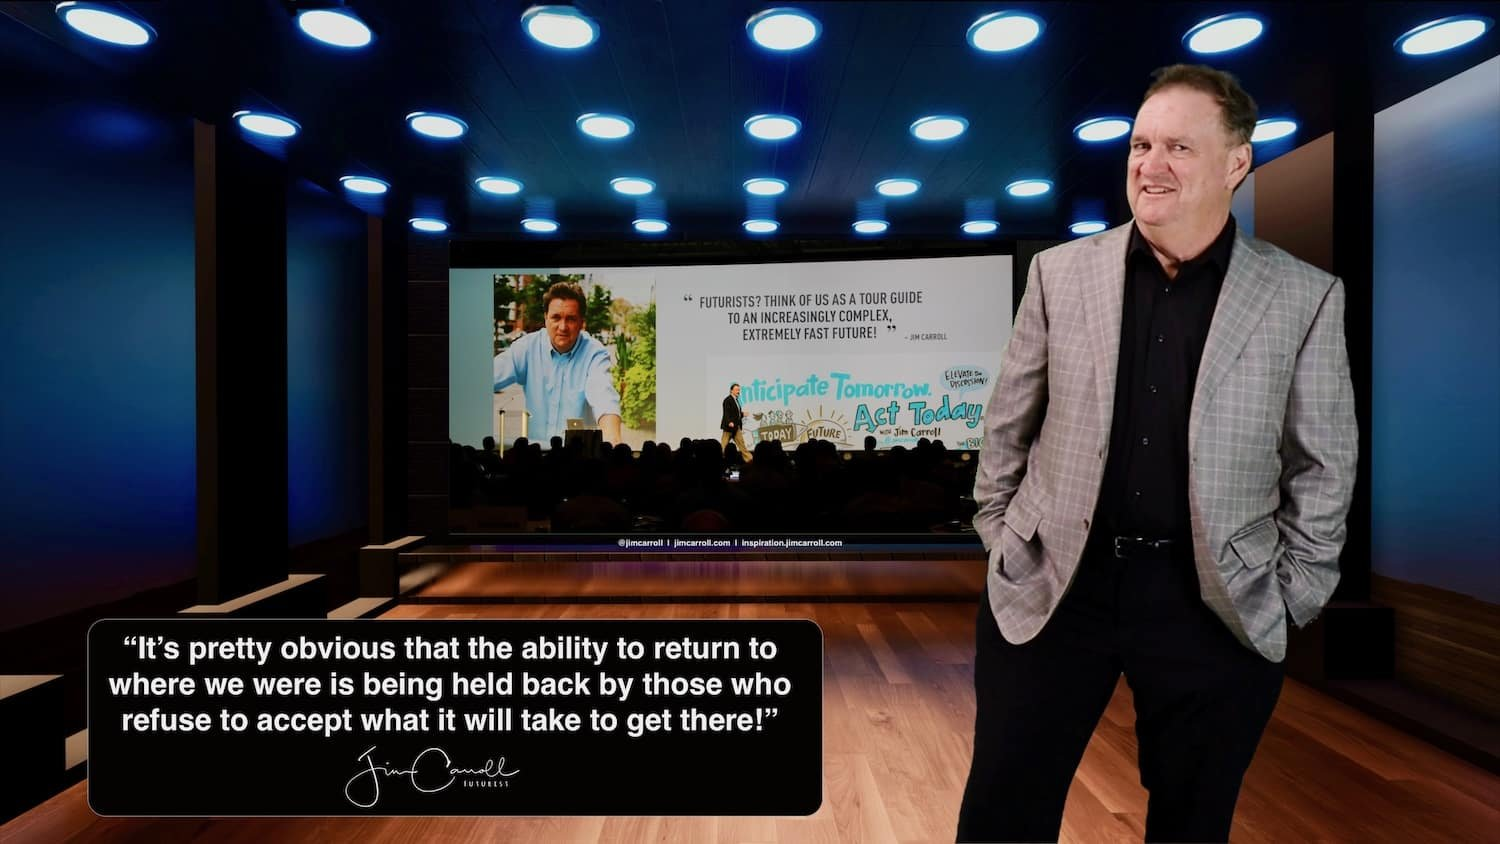 """Daily Inspiration: """"It's pretty obvious that the ability to return to where we were is being held back by those who refuse to accept what it will take to get there!"""""""